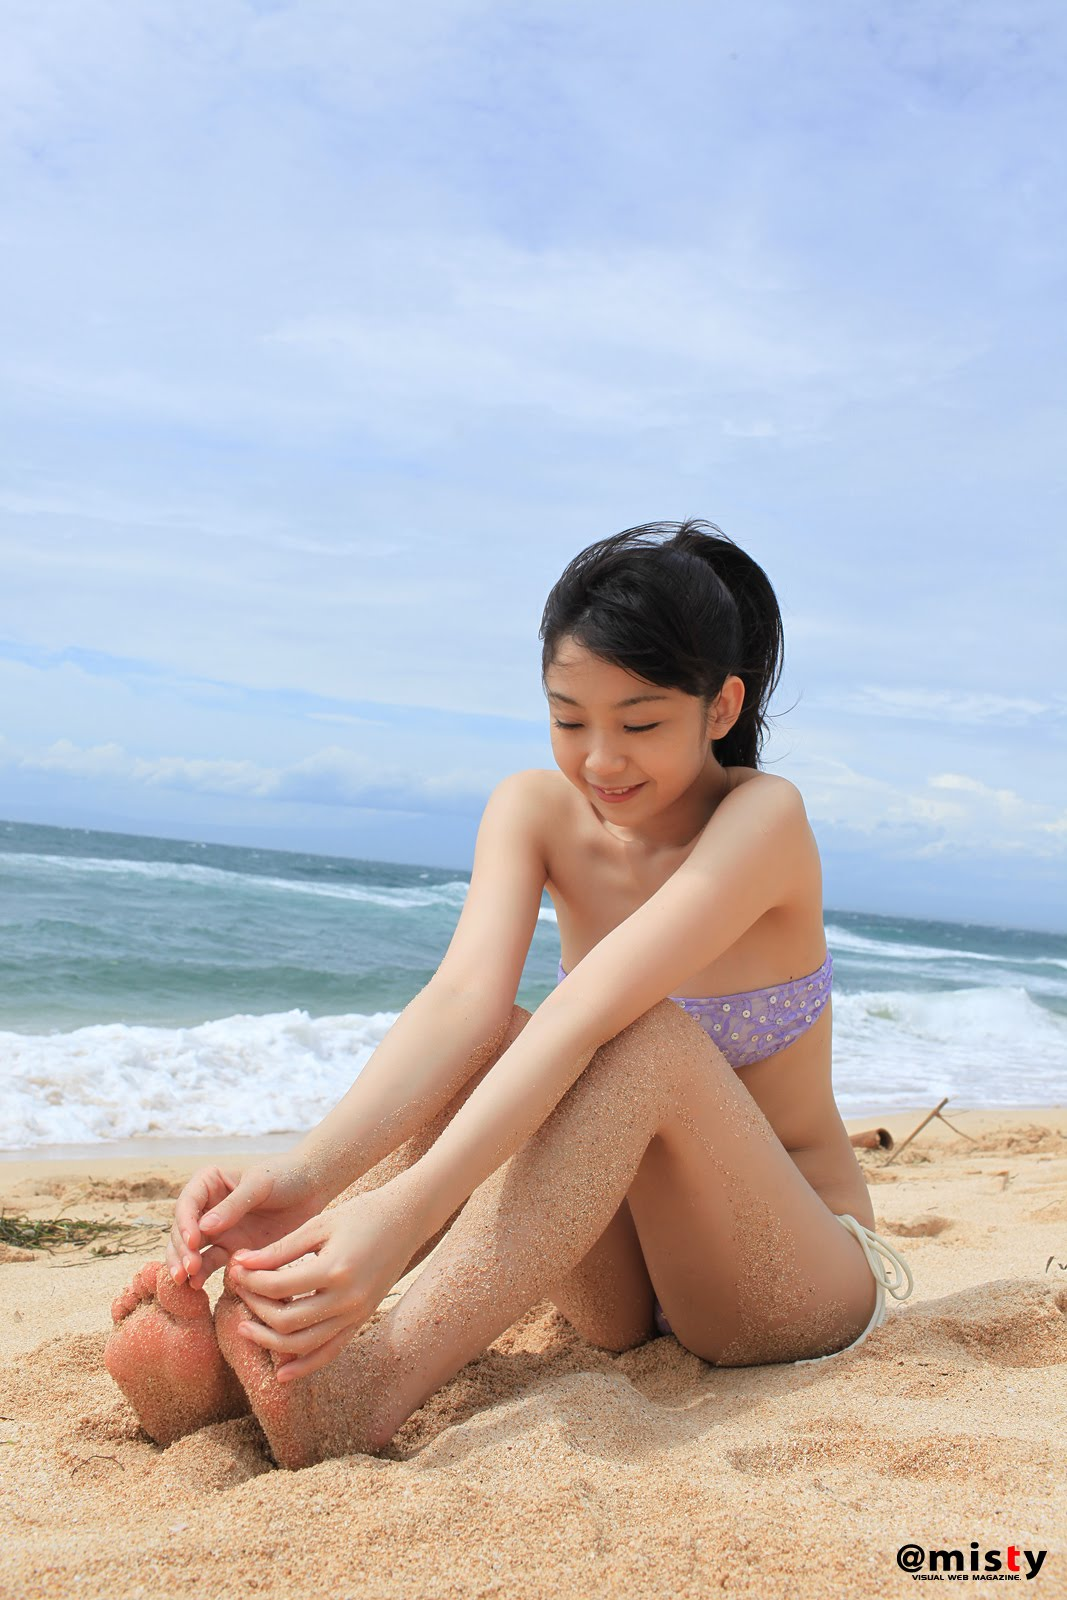 satellite beach single asian girls If you're looking for sexy asian women online, join afroromance from wherever you are in satellite beach, we help you meet likeminded individuals who all want to live happily ever after start chatting to our singles to discover if you have a genuine connection with them, all from the comfort of your own home.